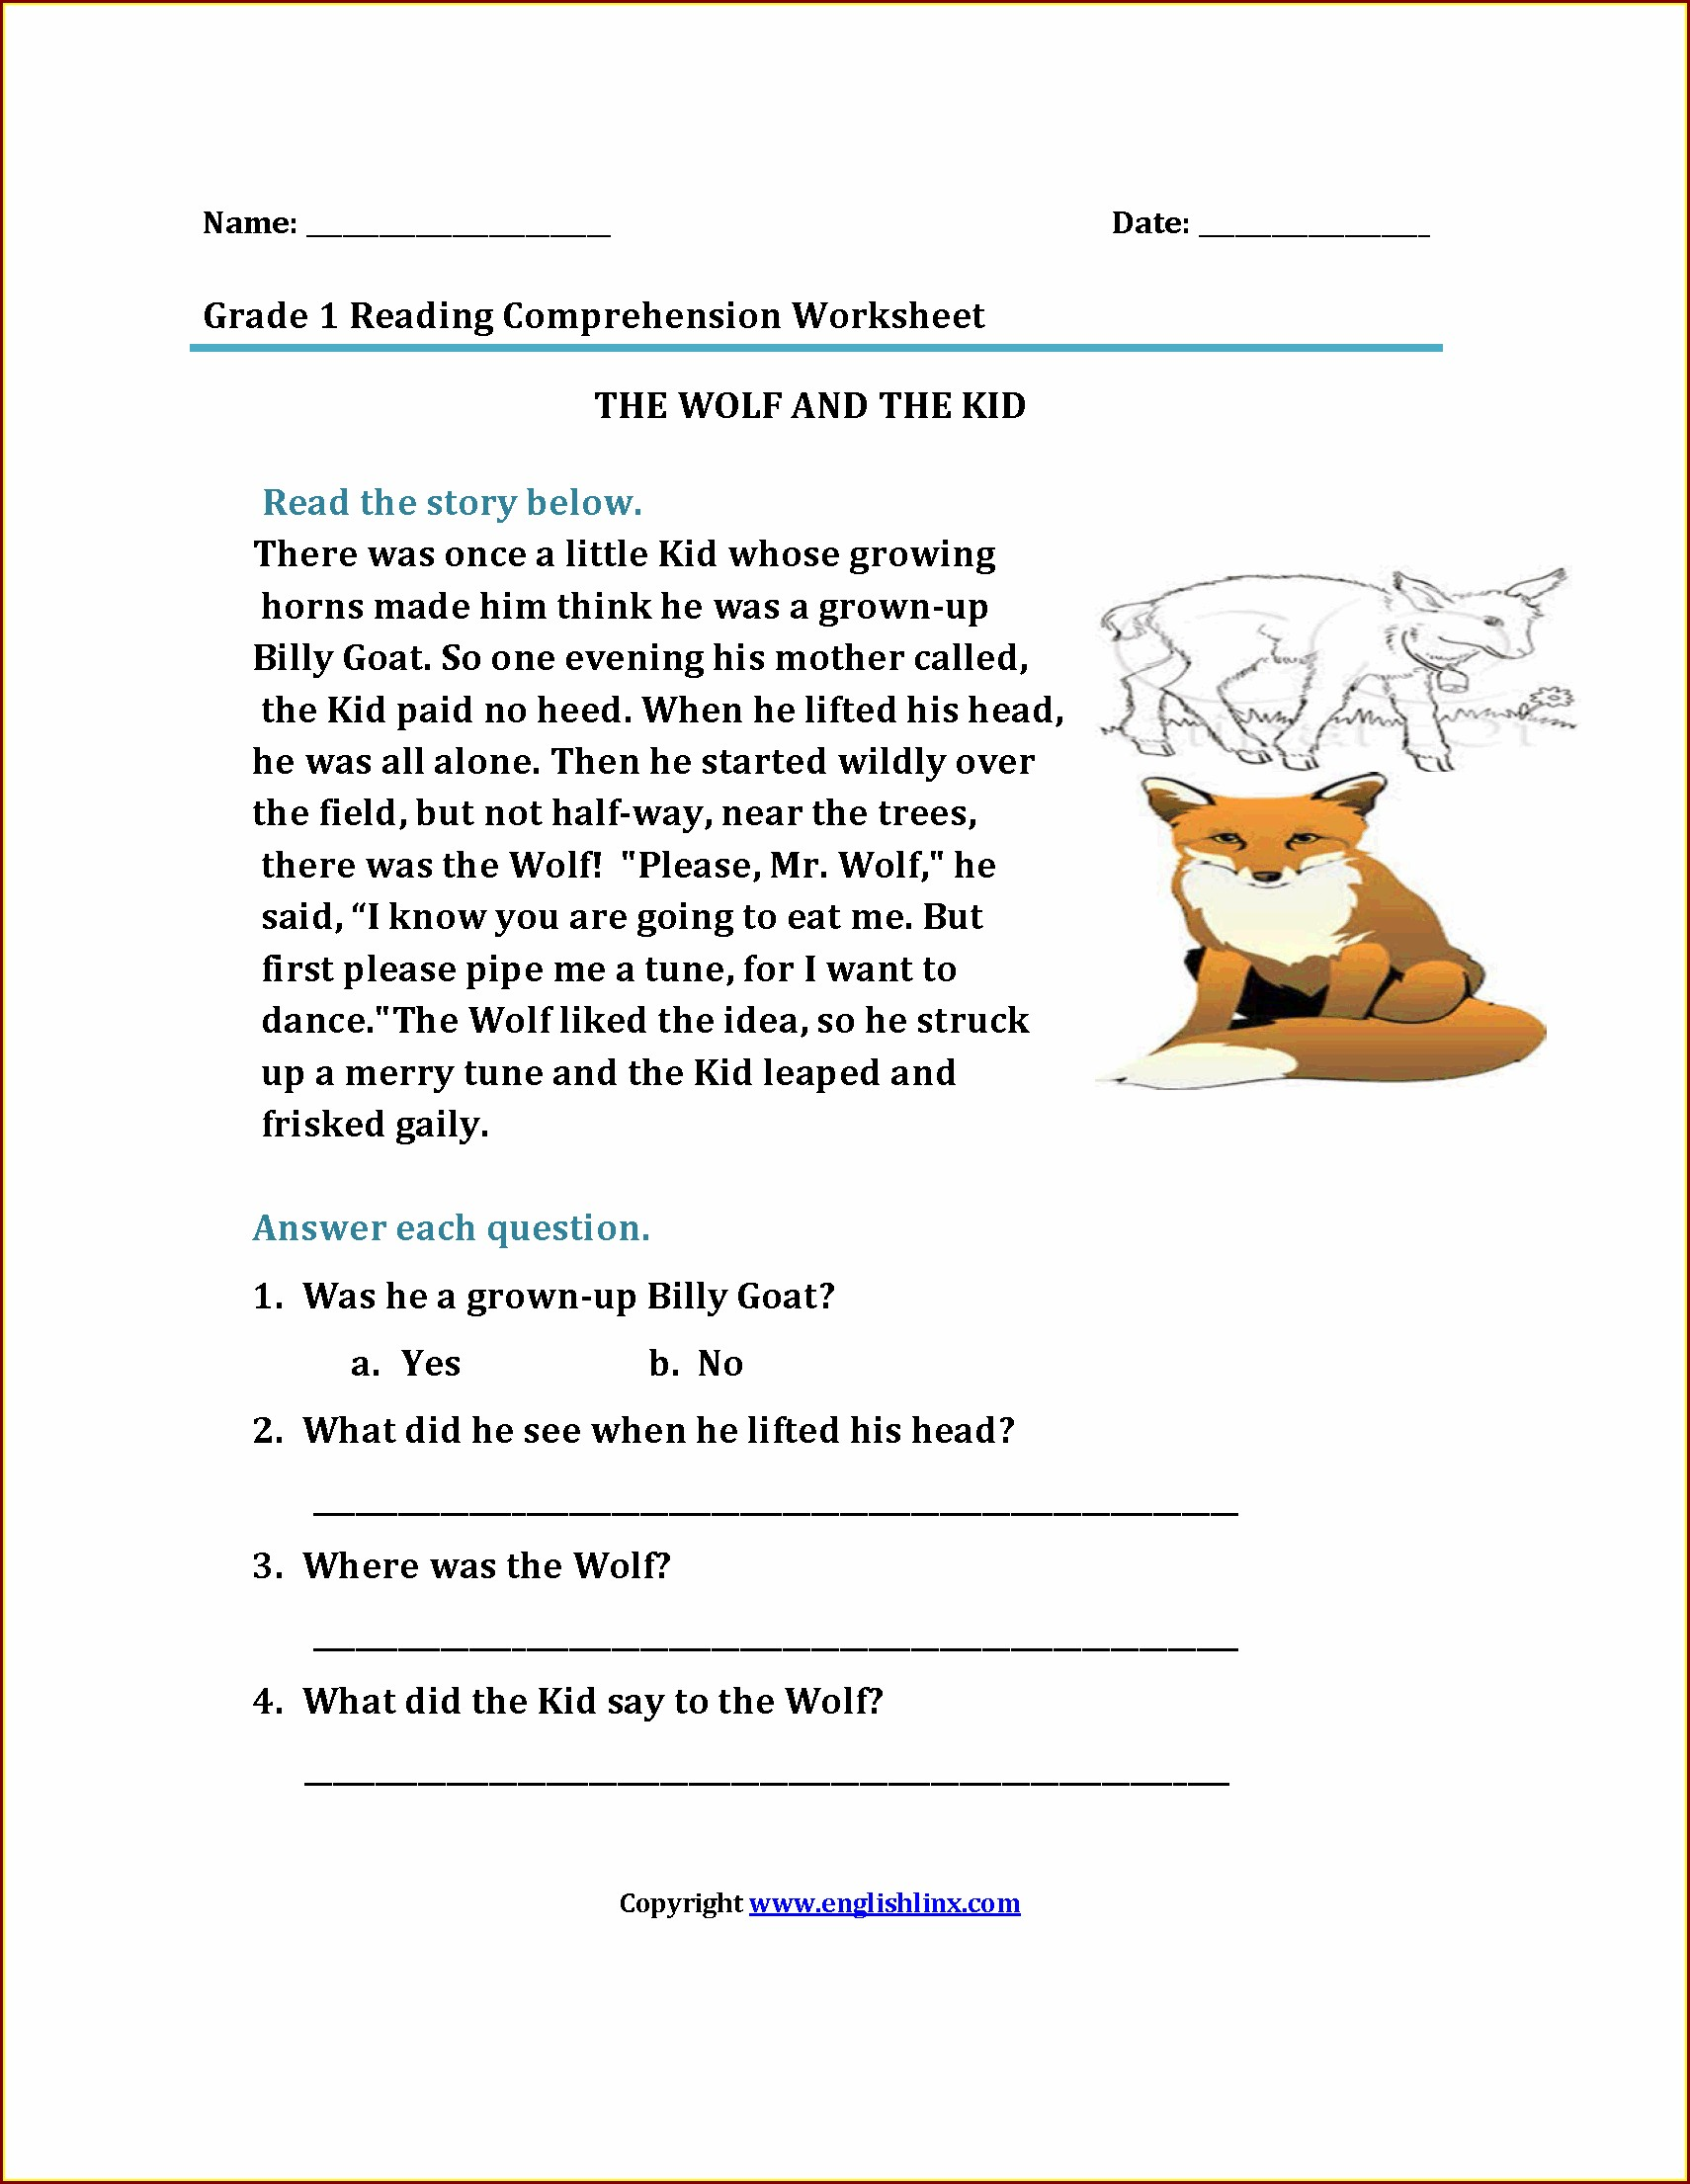 Worksheet Reading Comprehension Year 1